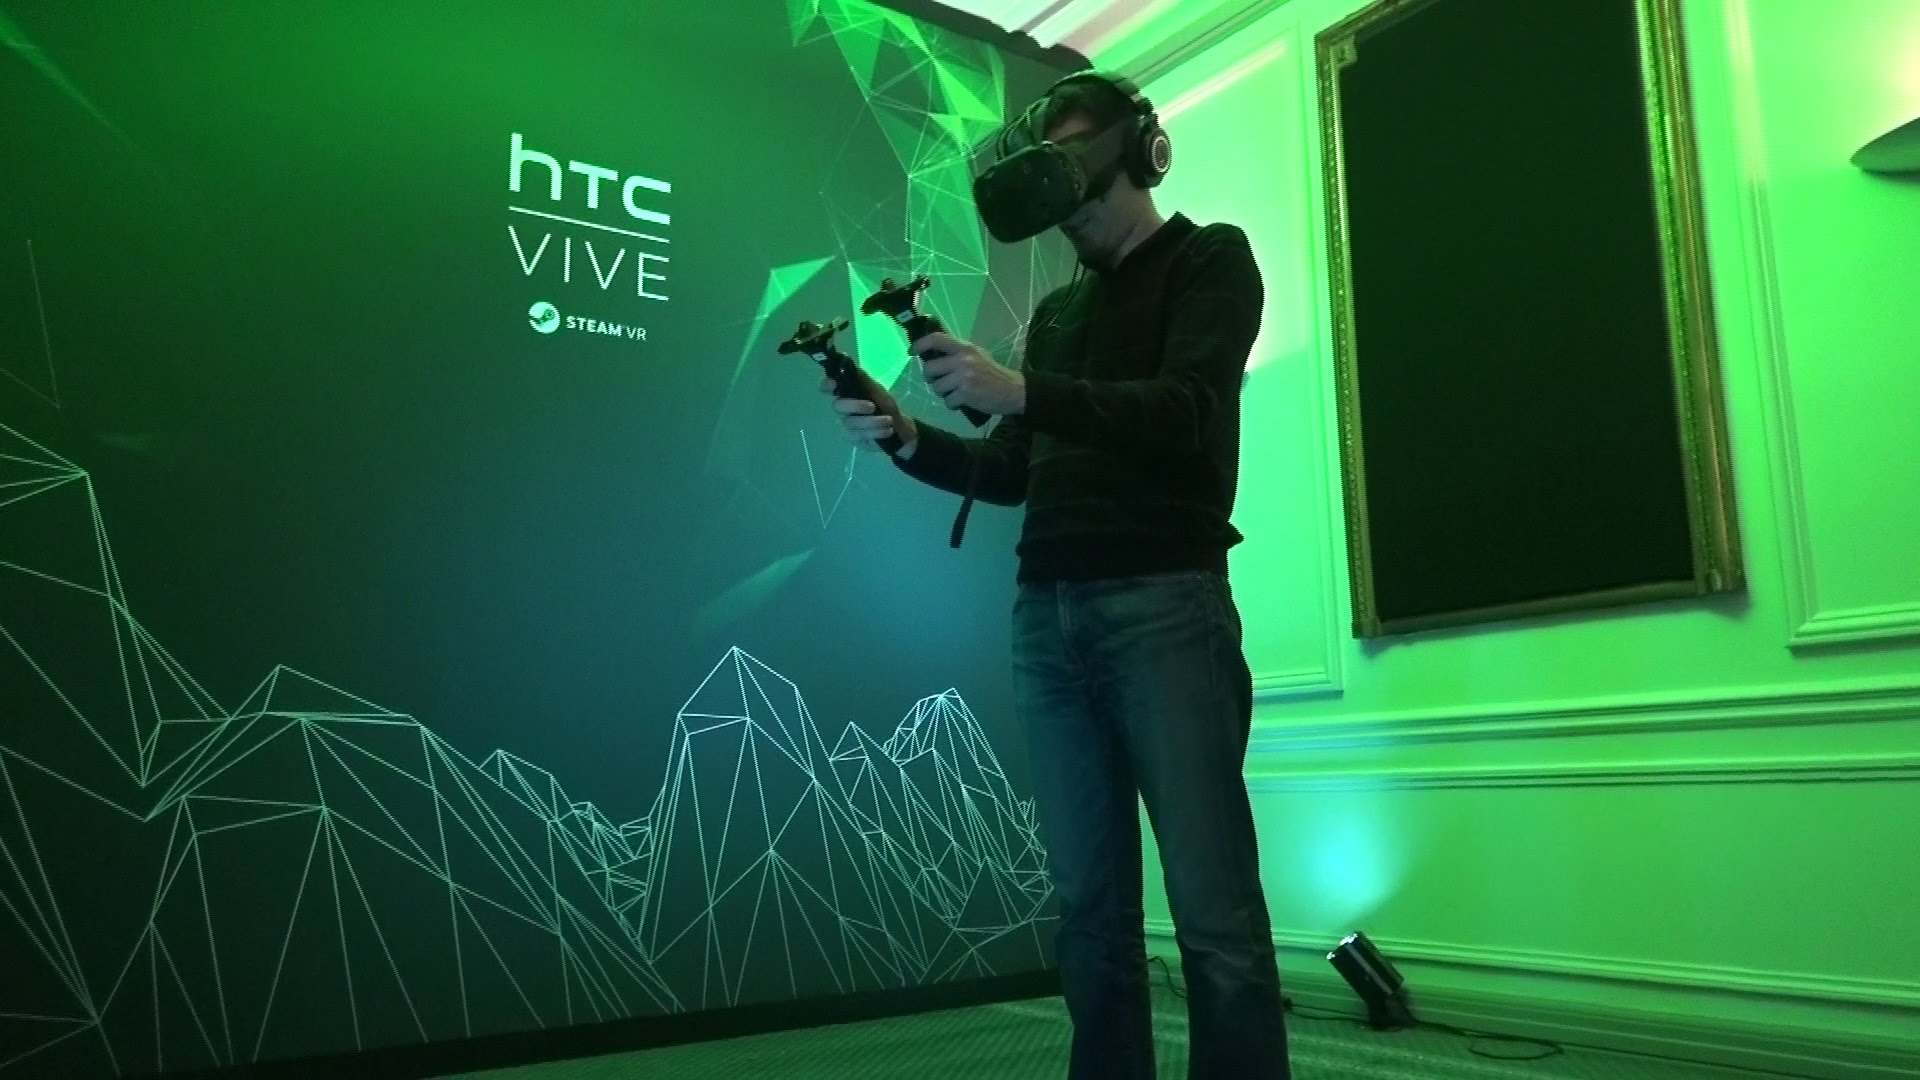 htc vive test